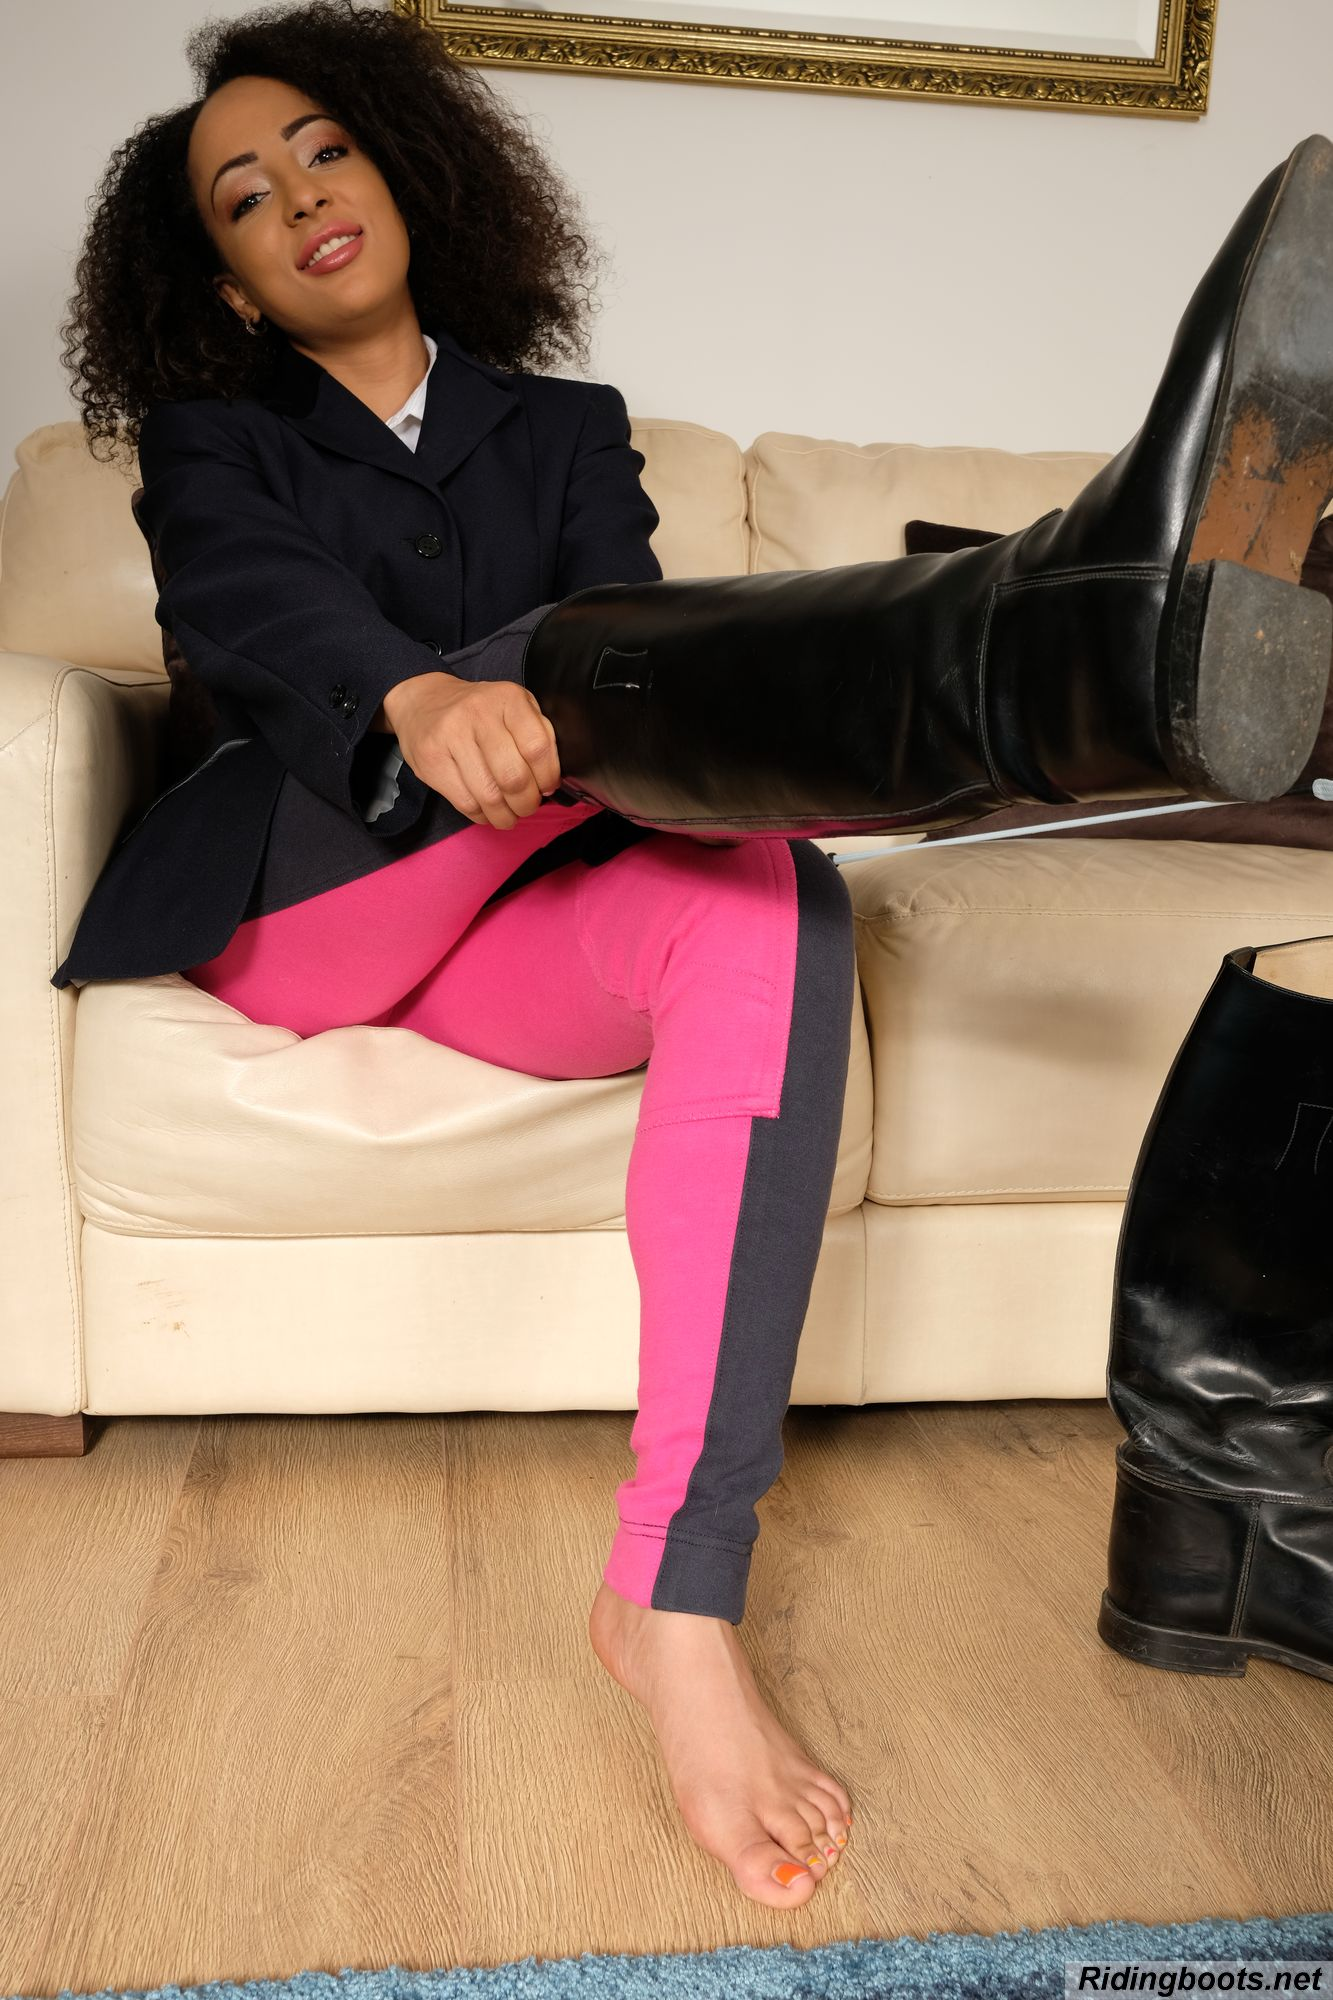 Kayla Louise in ridingboots.